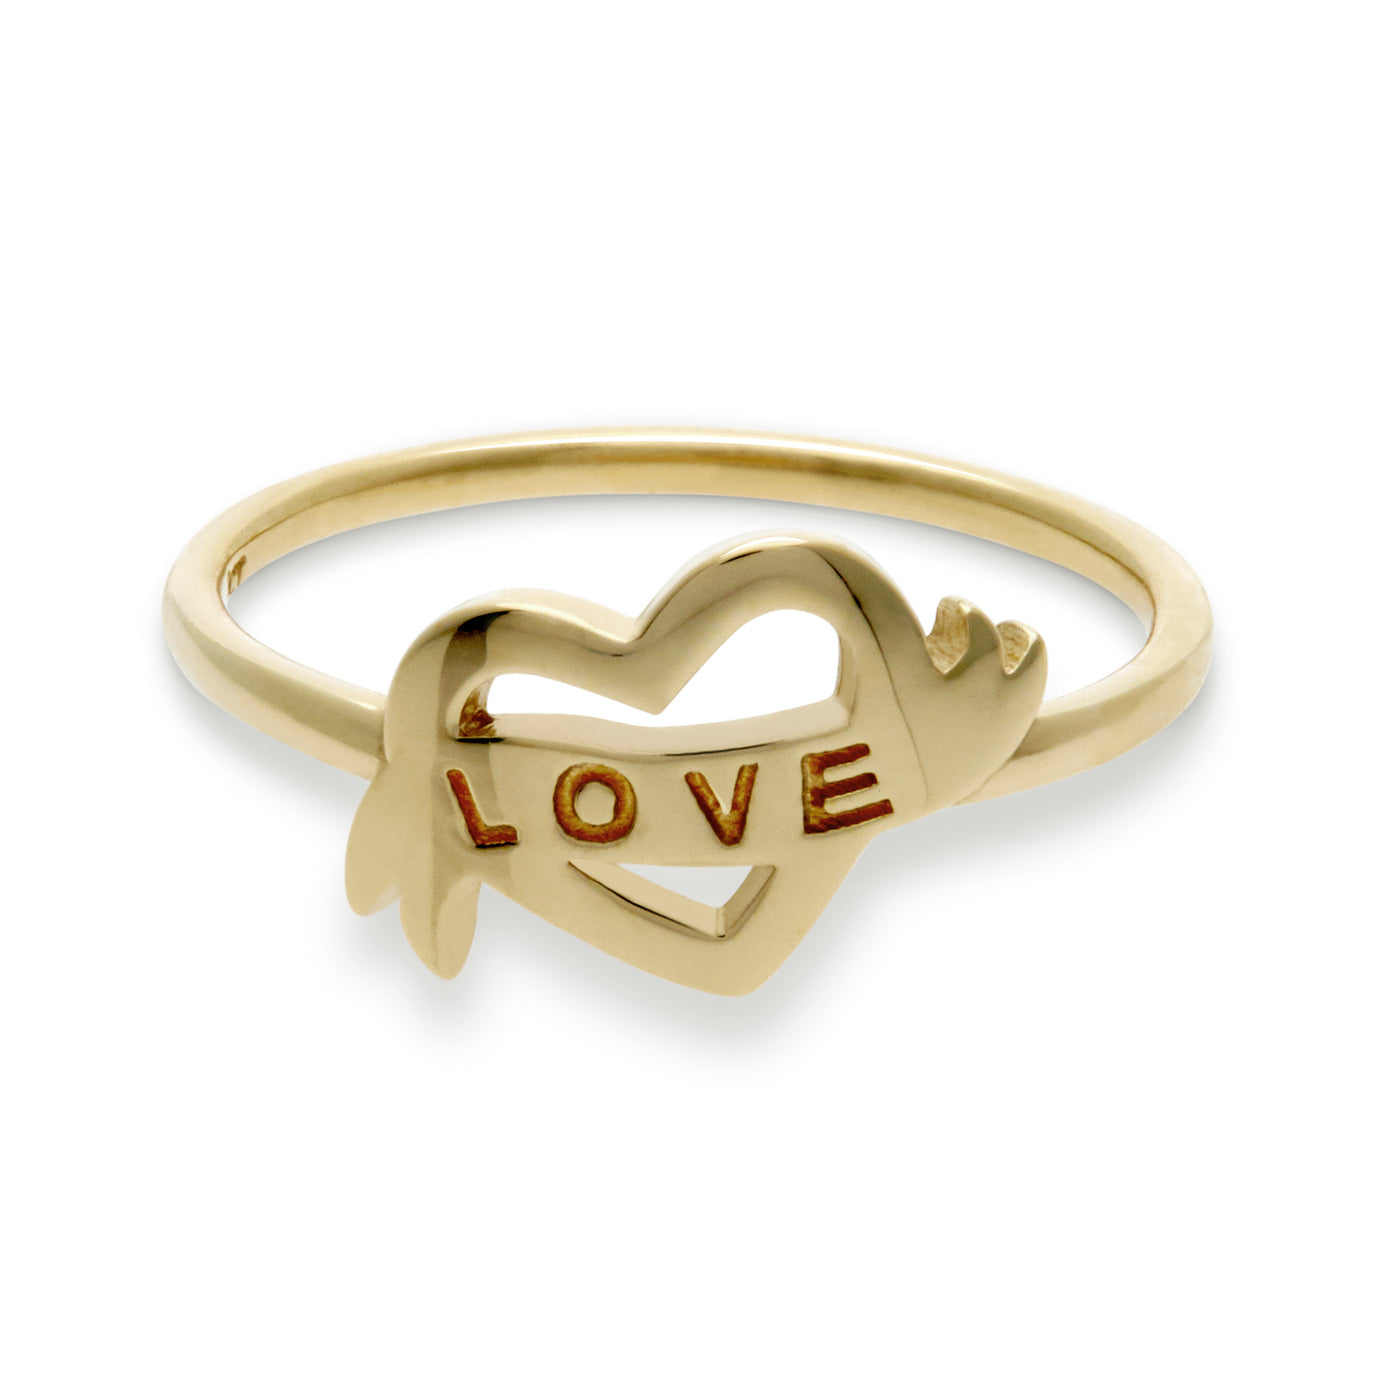 Love Heart Ring in Solid Gold